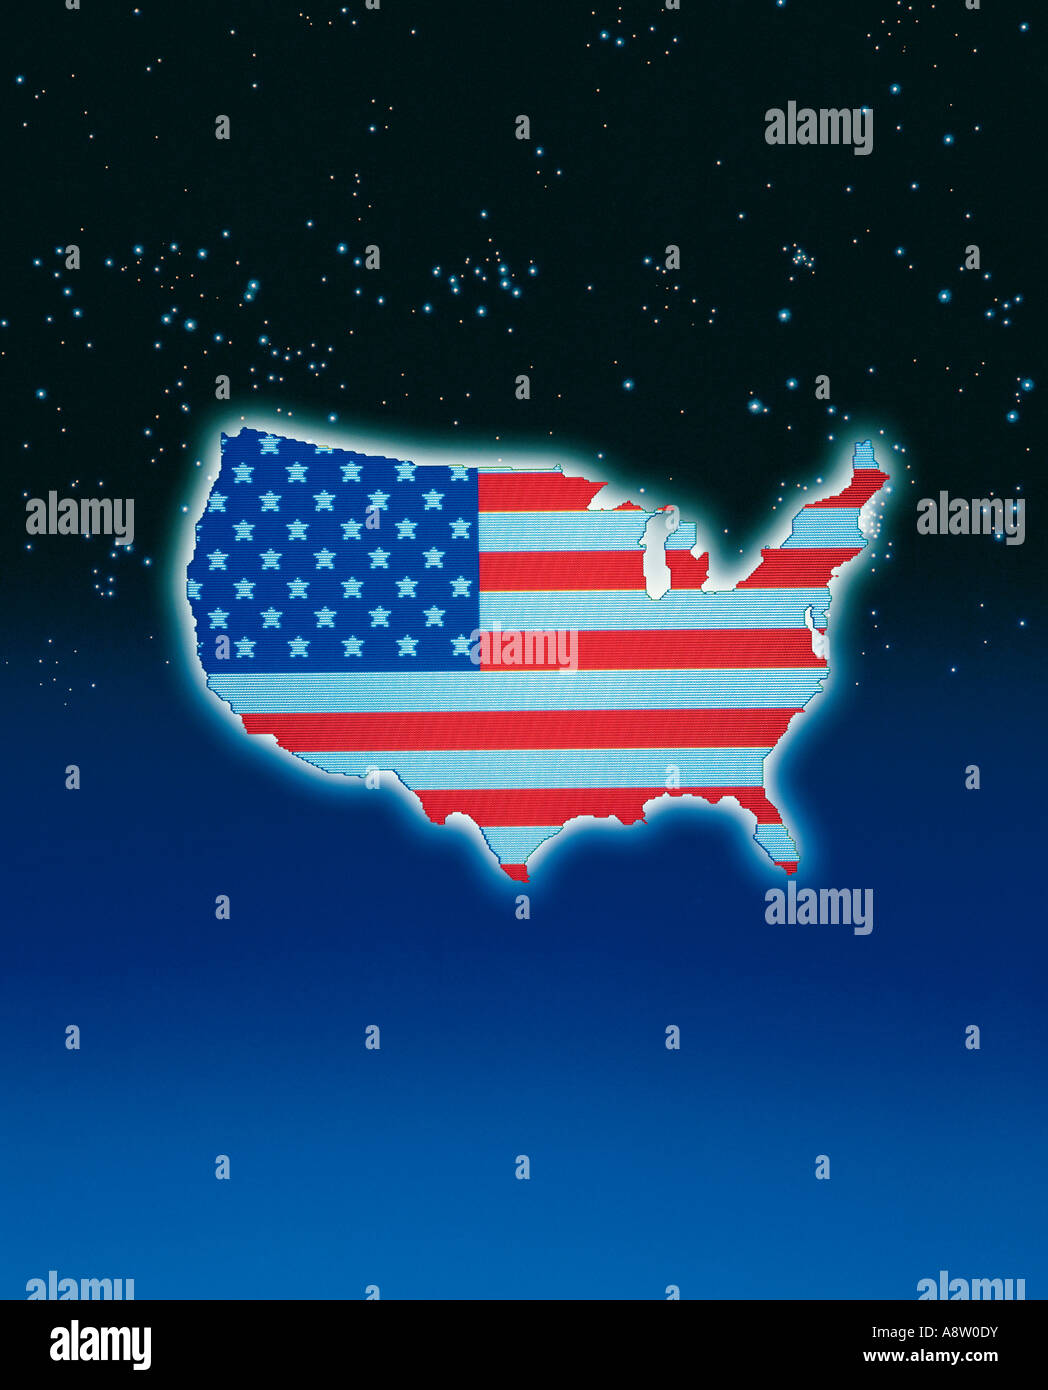 Art Concept. La carte contour de United States of America avec stars and stripes flag contre nuit étoilée Photo Stock